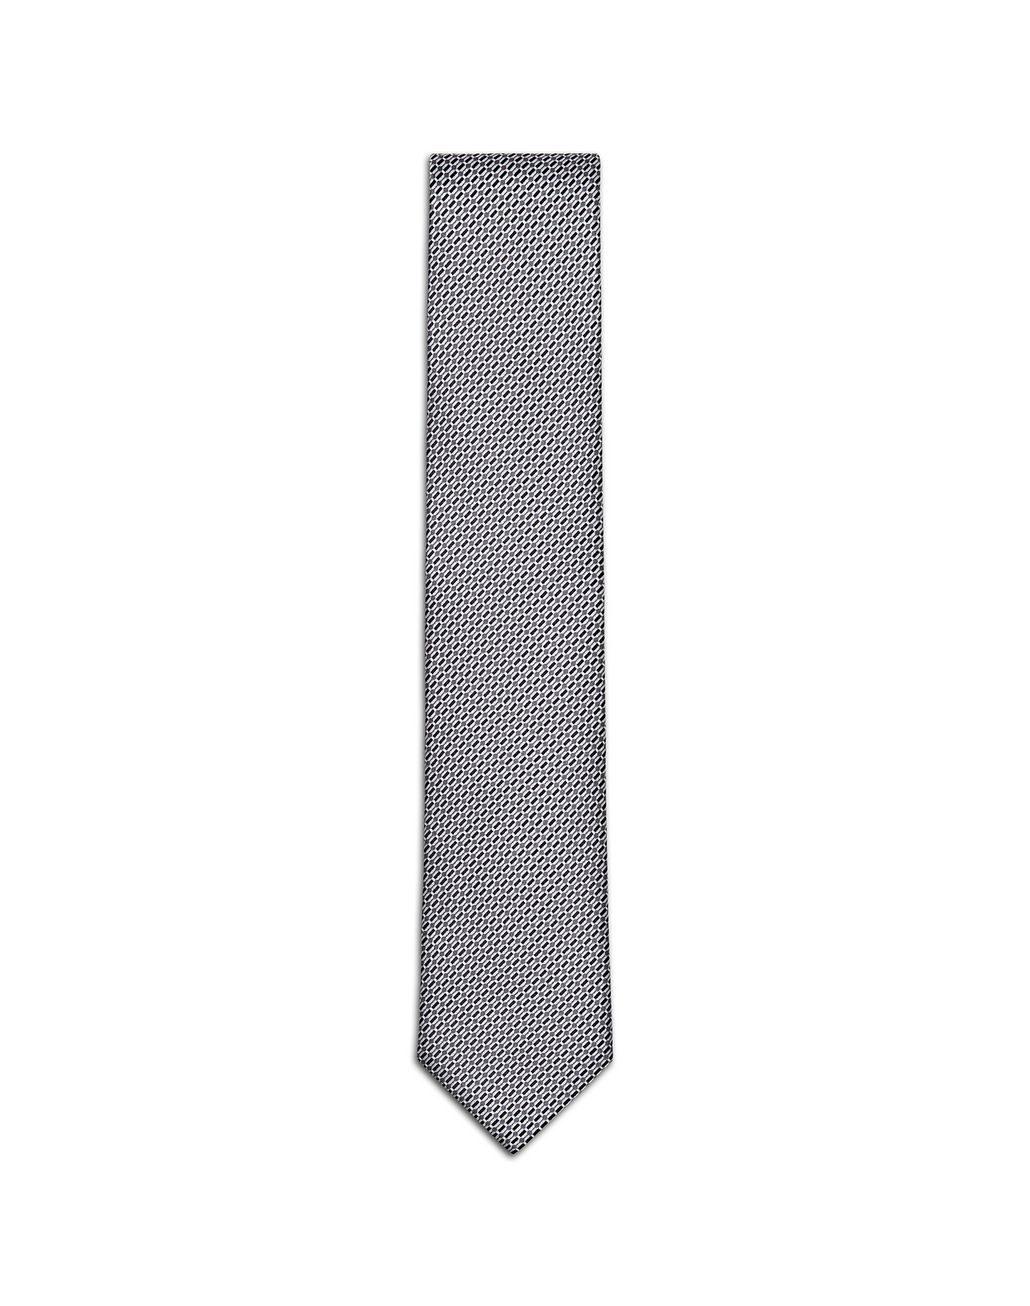 BRIONI Black and Gray Micro-Design Tie Tie & Pocket Square Man f